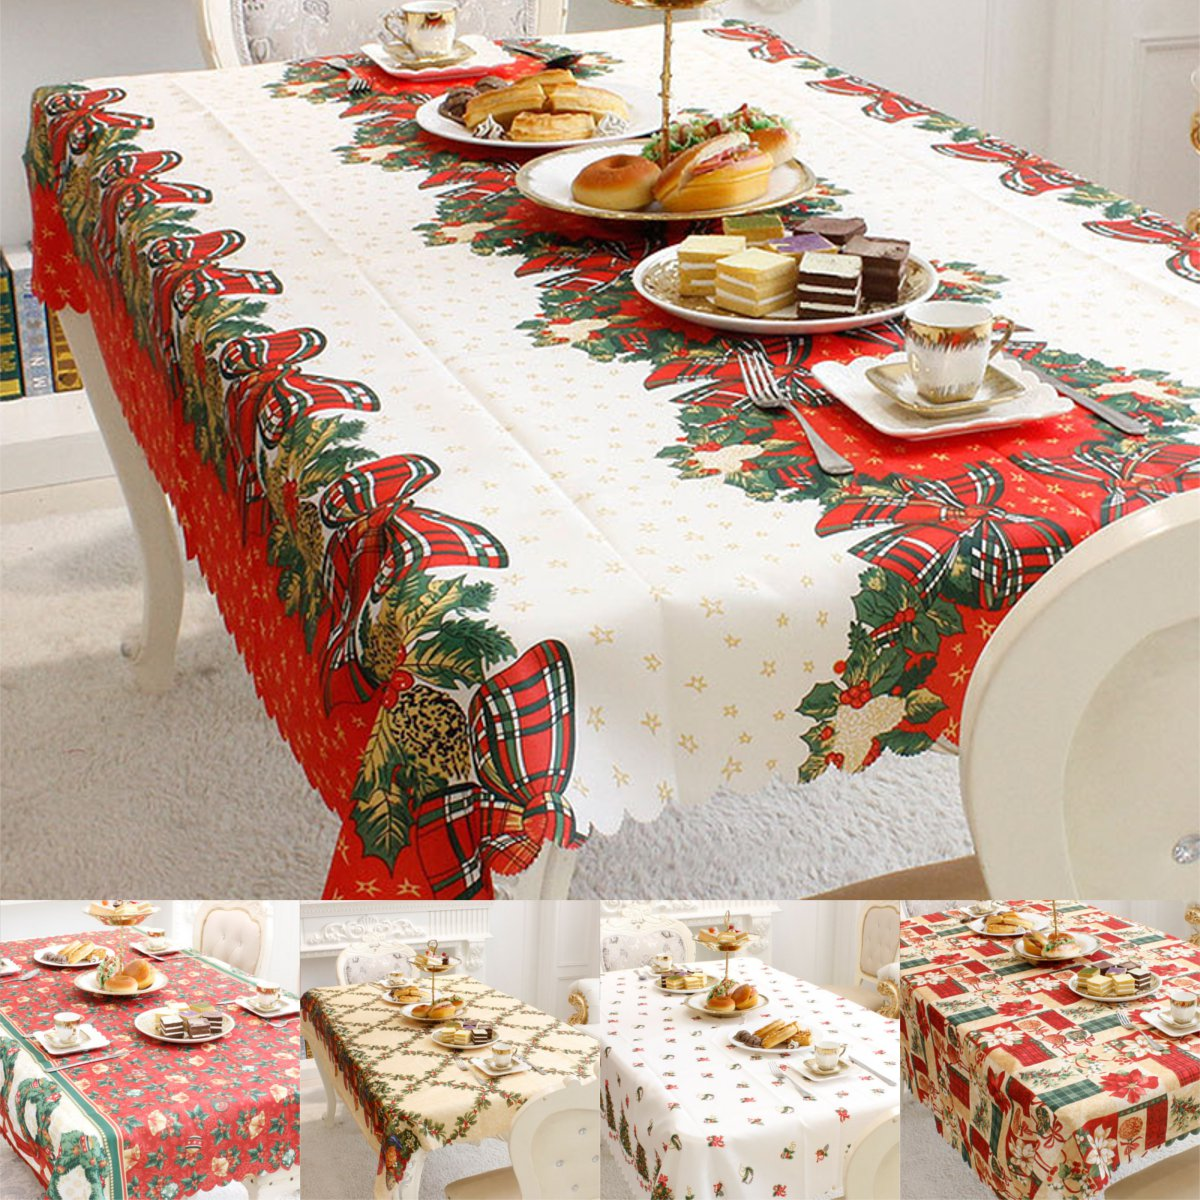 Christmas Tablecloths Australia Details About Christmas Tablecloth Rectangle Table Cloth New Year Table Cover Xmas Party Decor